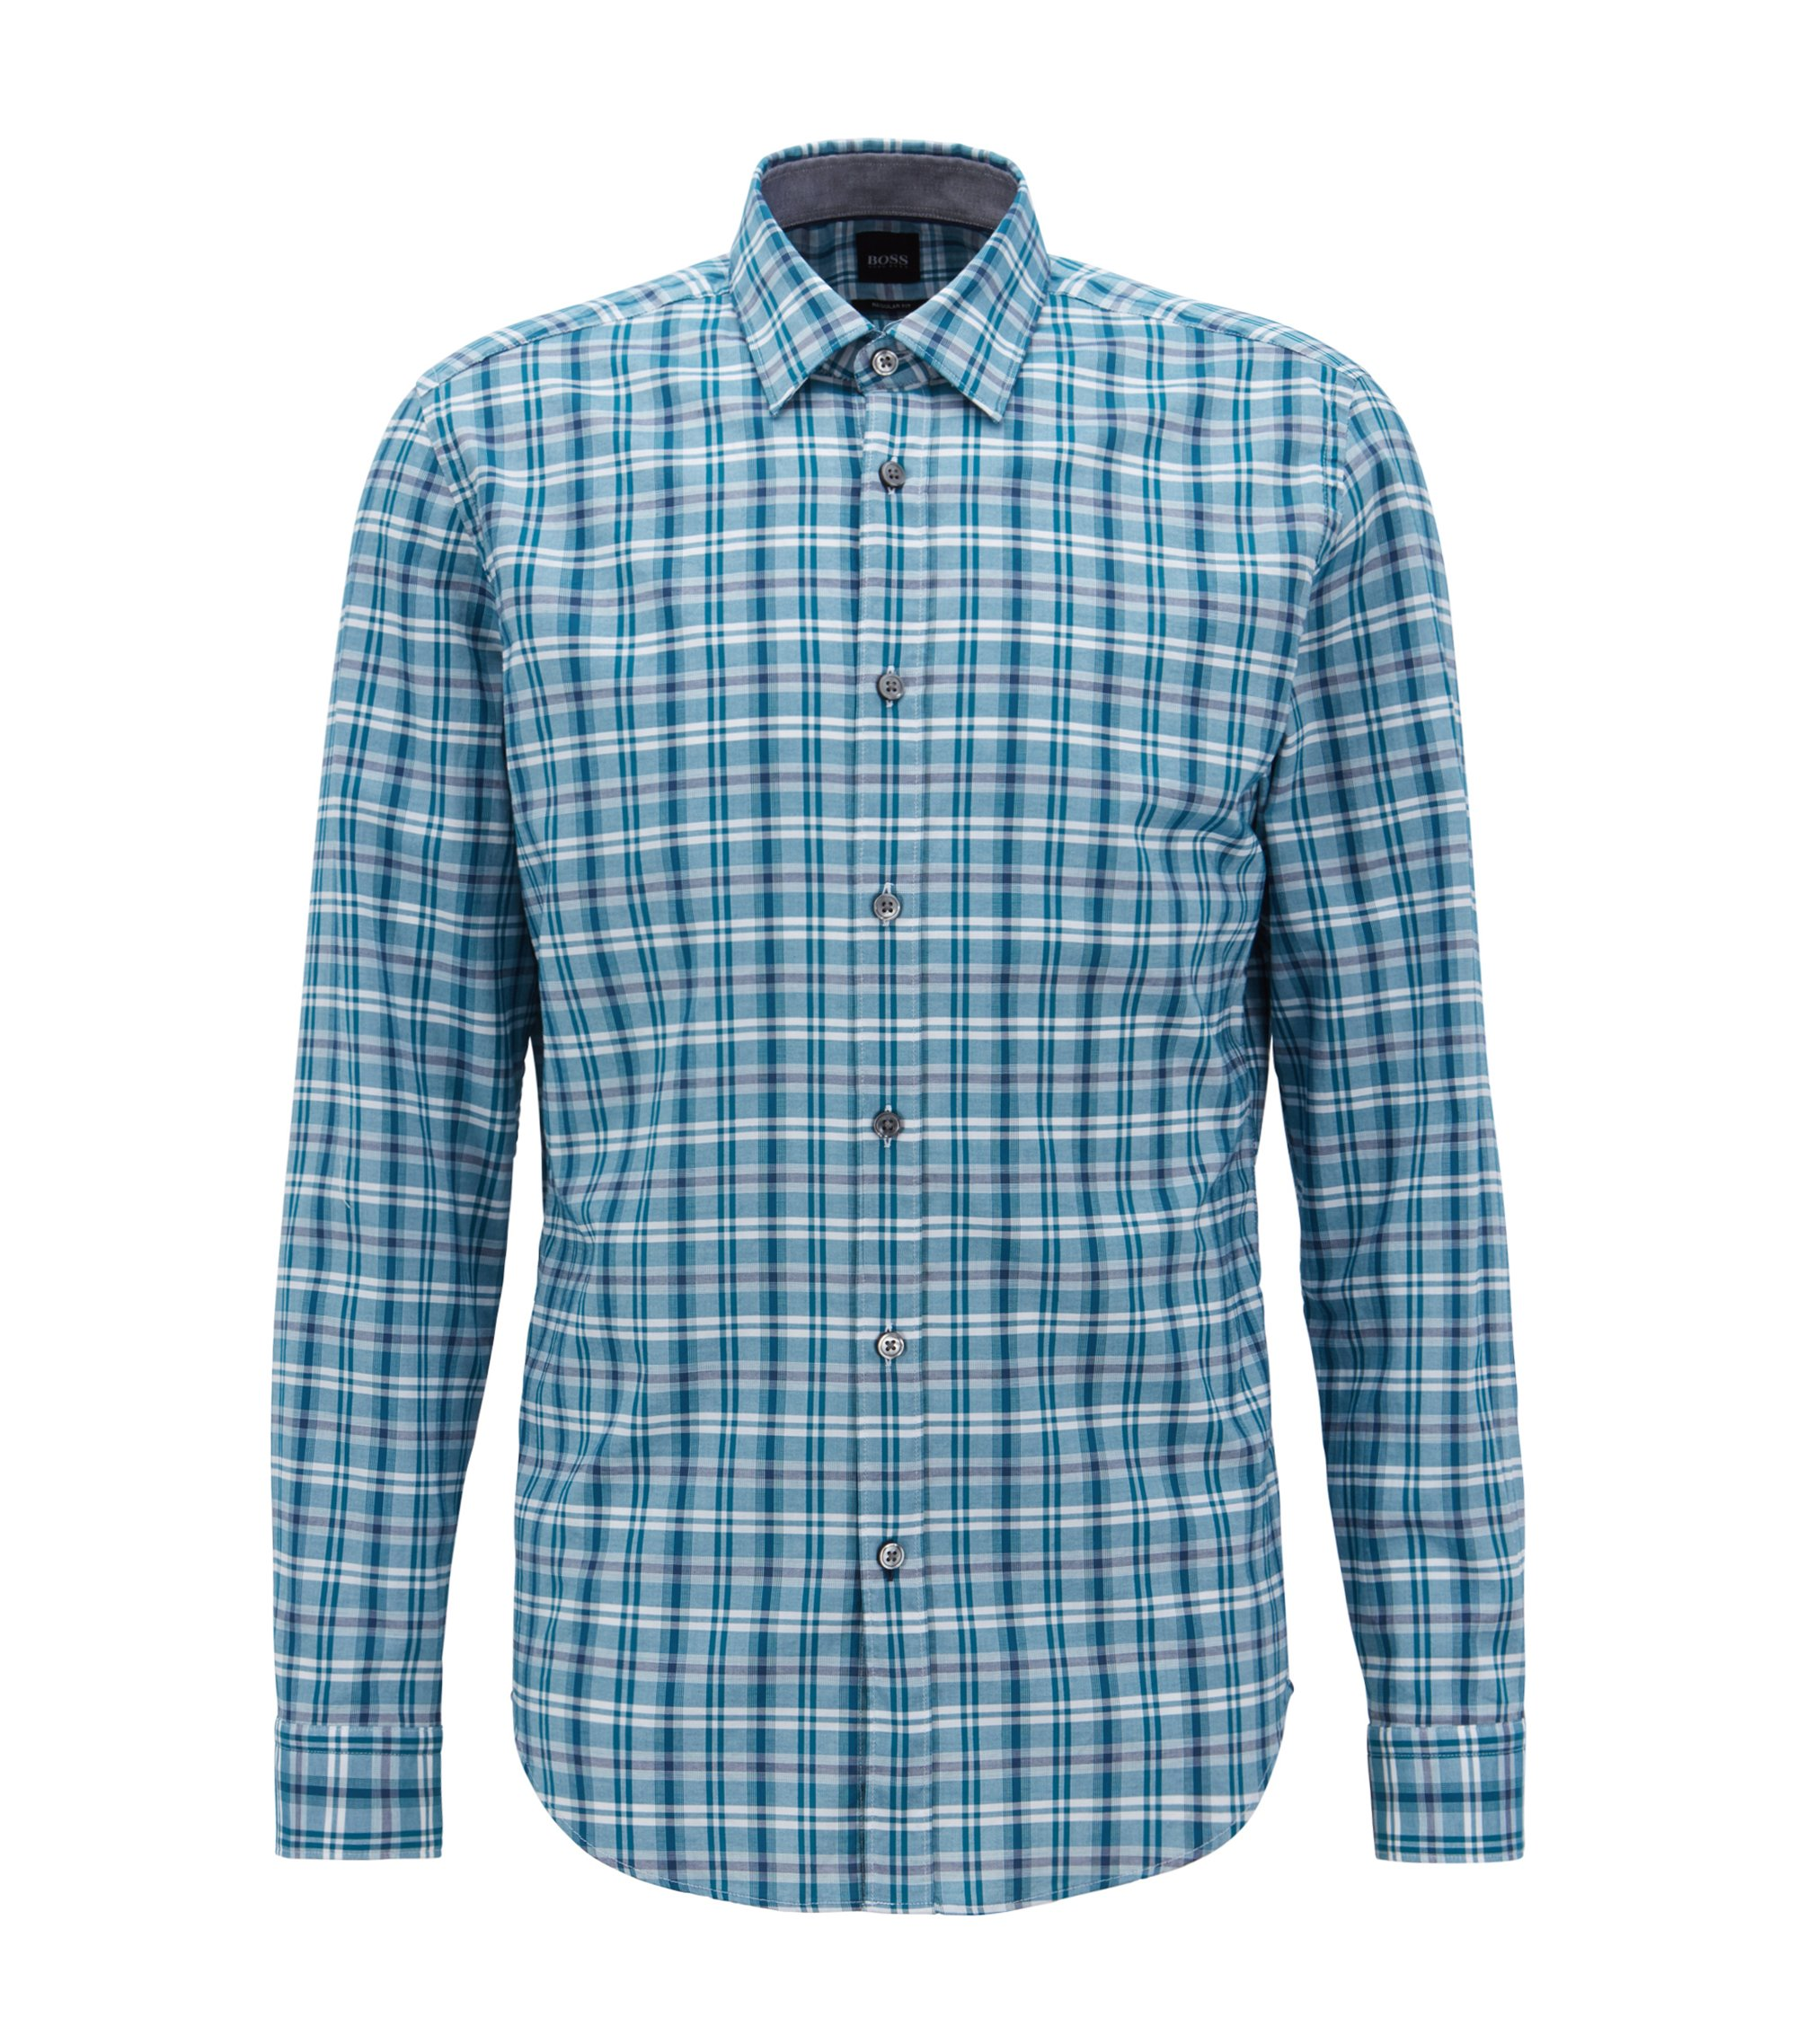 Regular-fit shirt in colorful checked cotton, Turquoise